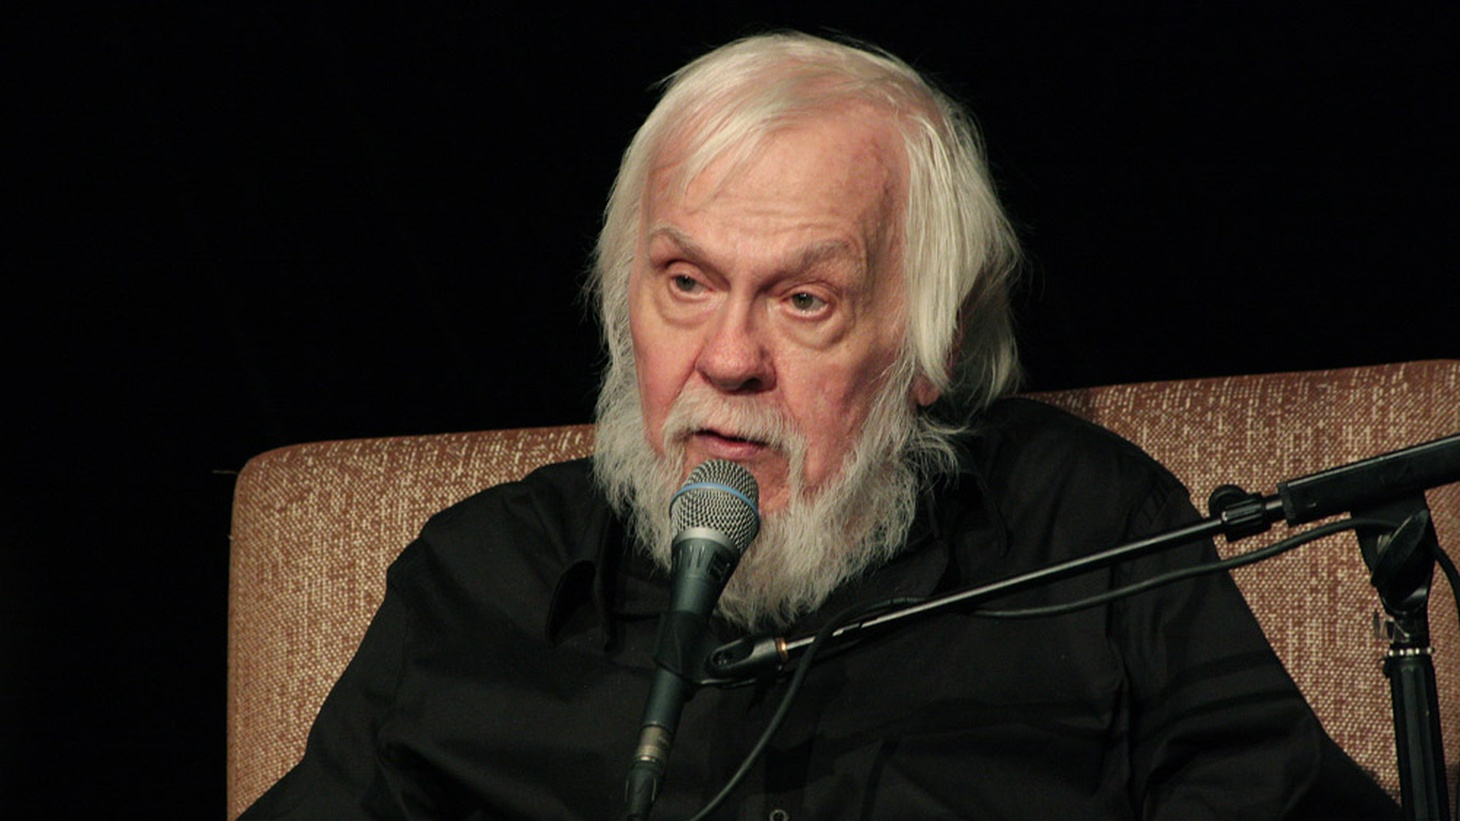 John Baldessari in Moscow, 2013.